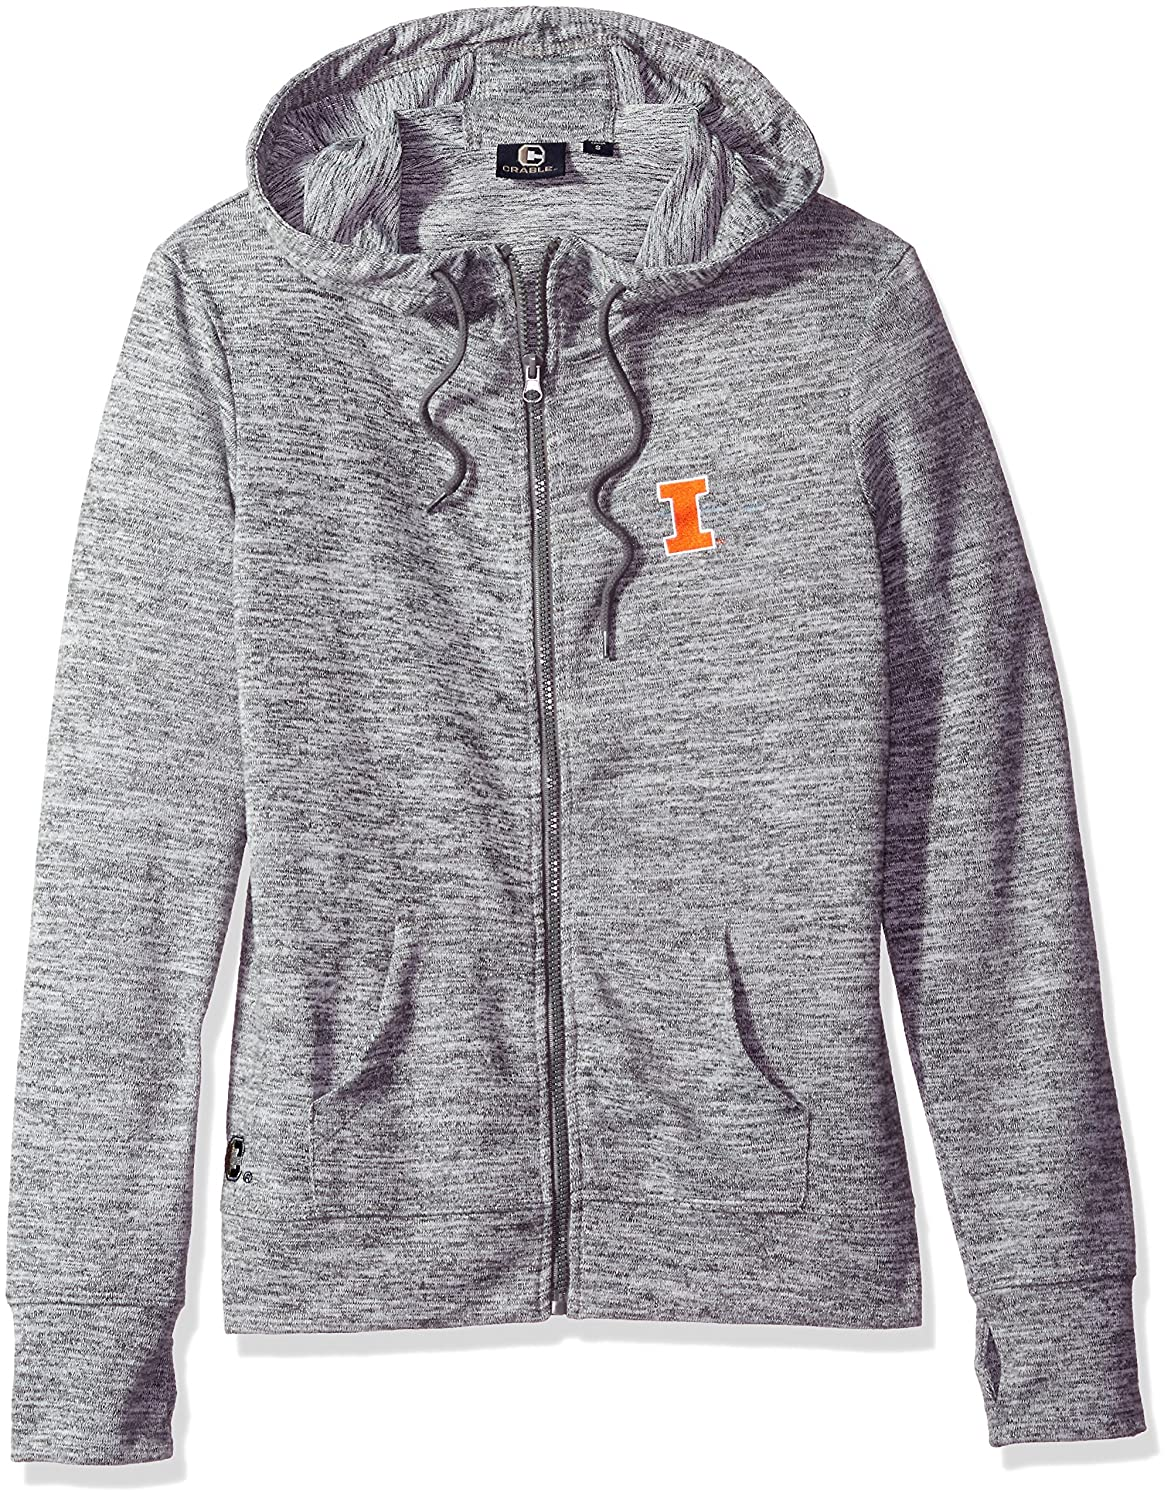 Crable NCAA Womens Zip Front Drawstring Hoodie